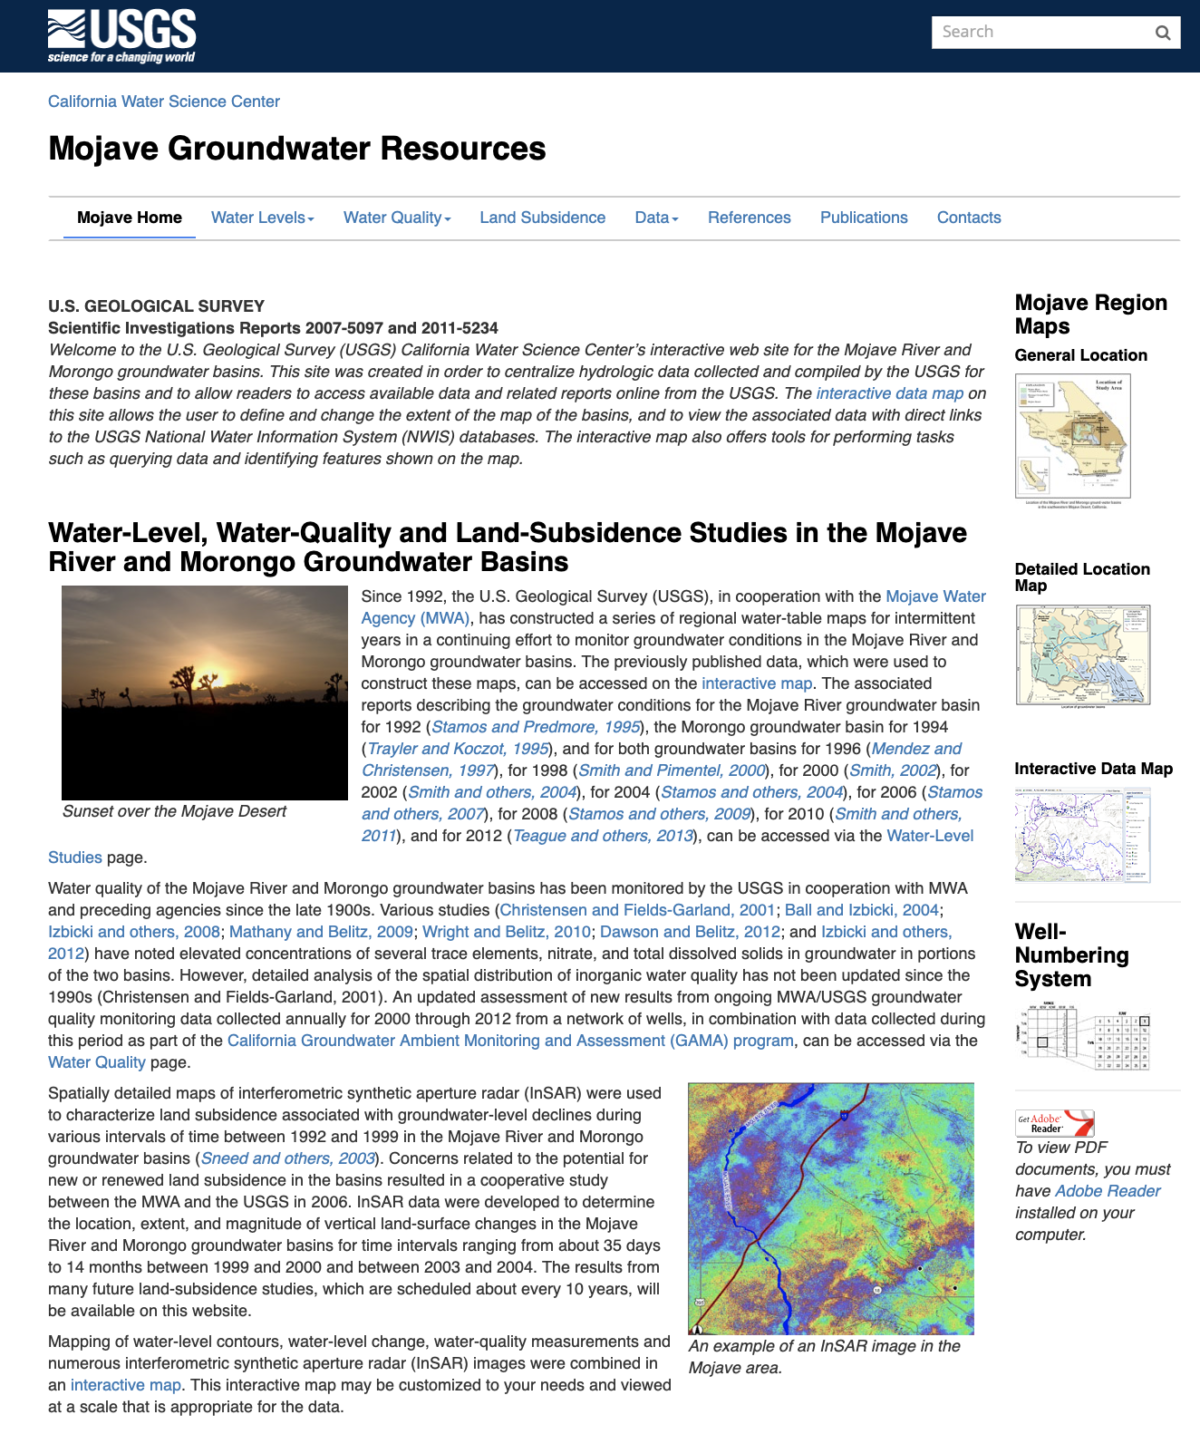 Water-Level and land-subsidence studies in the Mojave River and Morongo groundwater basins; 2007